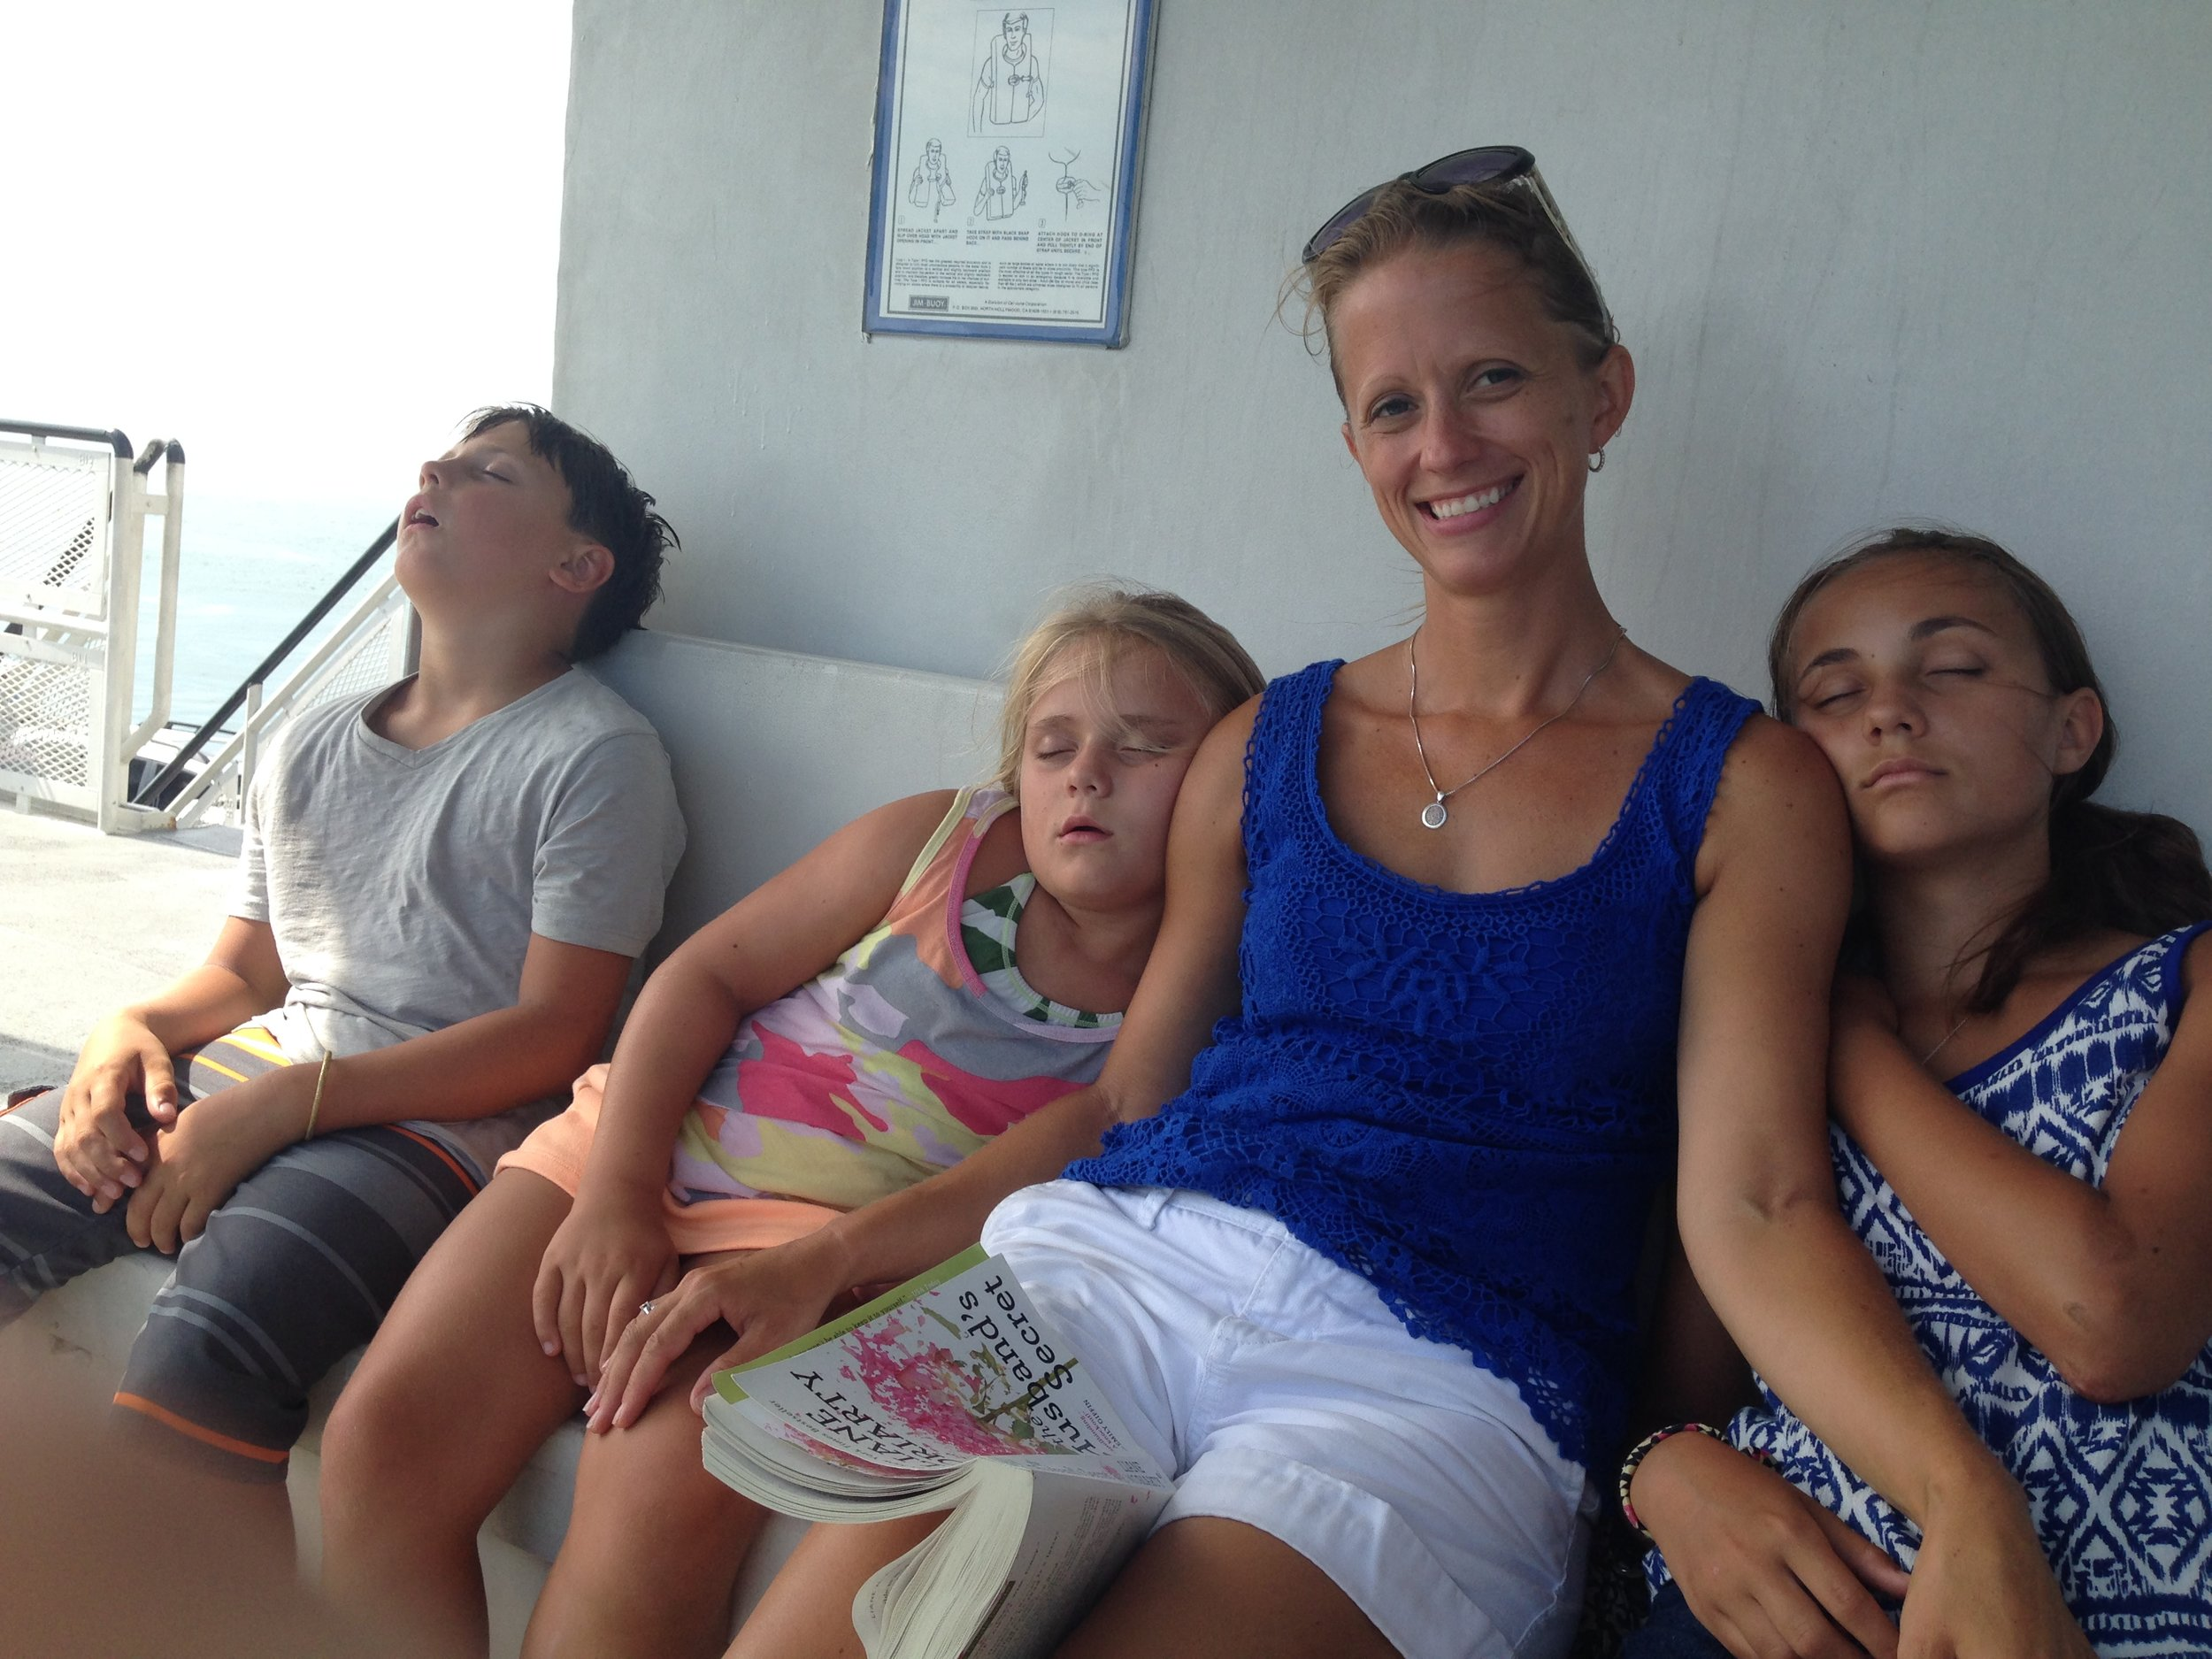 Proud Momma Moment - Bill away filming GHR but I've got them sleeping on a ferry!